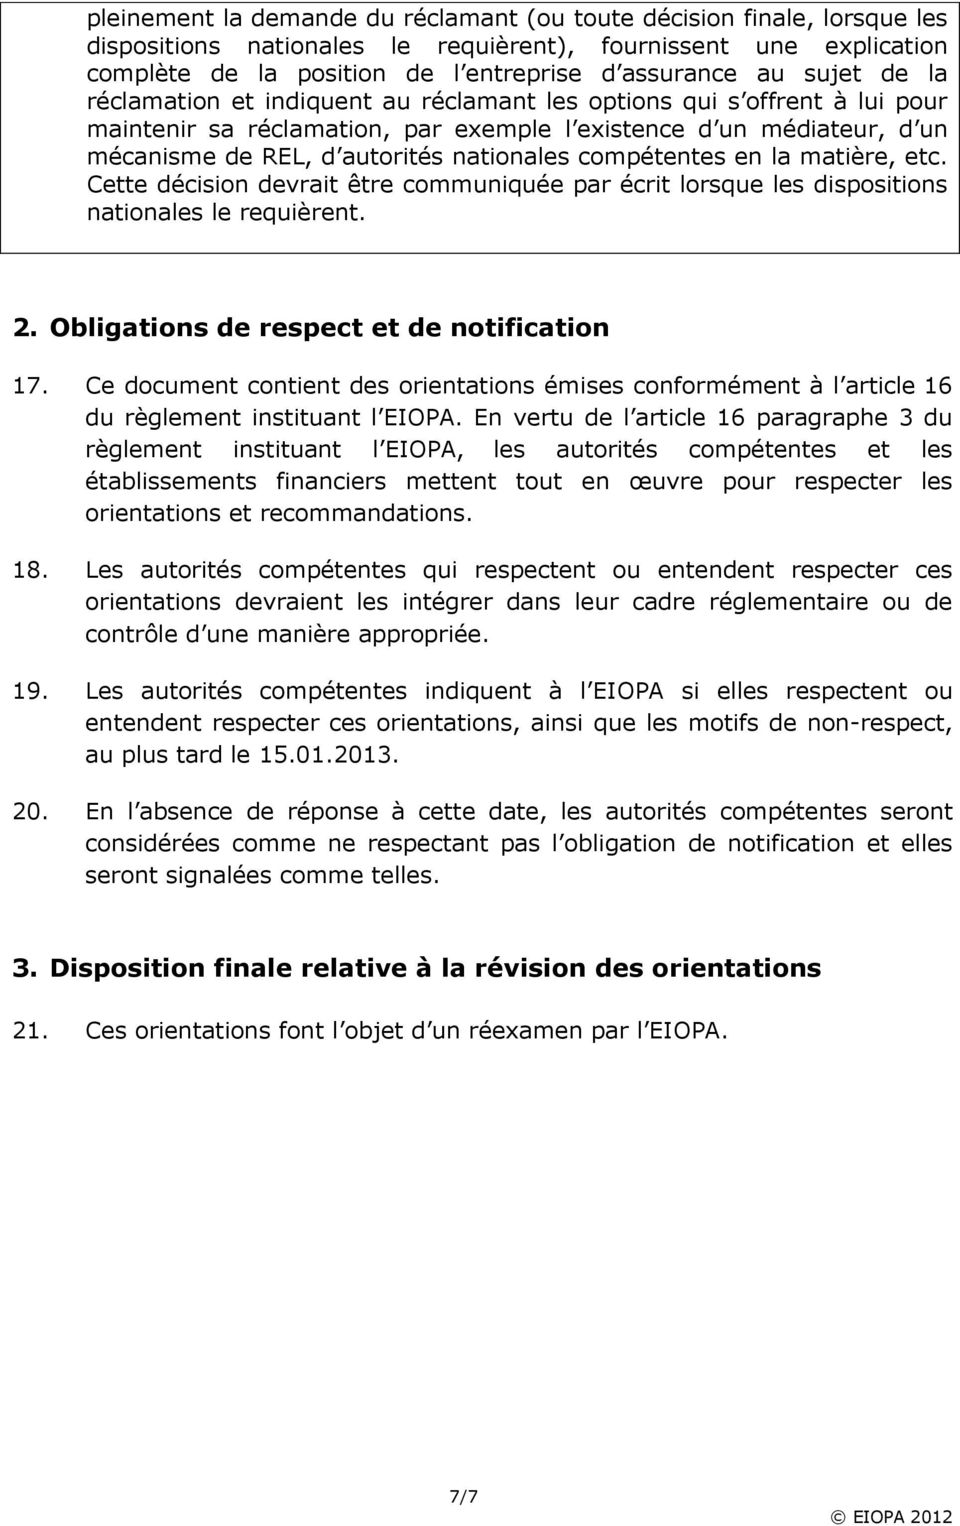 compétentes en la matière, etc. Cette décision devrait être communiquée par écrit lorsque les dispositions nationales le requièrent. 2. Obligations de respect et de notification 17.